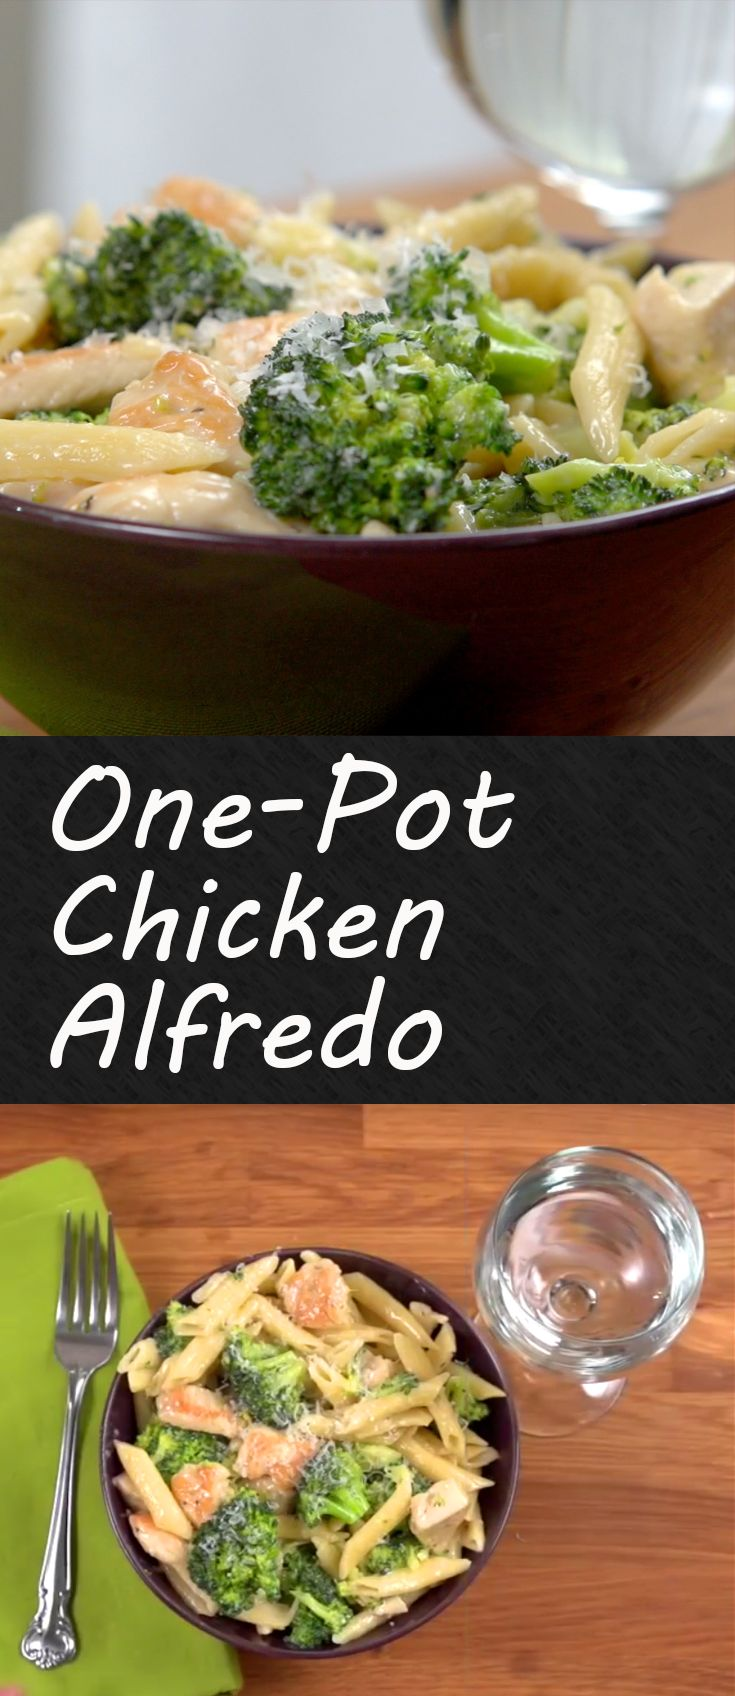 One Pot Chicken Alfredo | Another great one-pot meal that you can easily whip up during the weekday. A mix of chicken, broccoli, pasta and makes it perfect for family dinner night! Click for the full recipe and short how-to video. #familydinner #recipes #chickendinner #easymeals